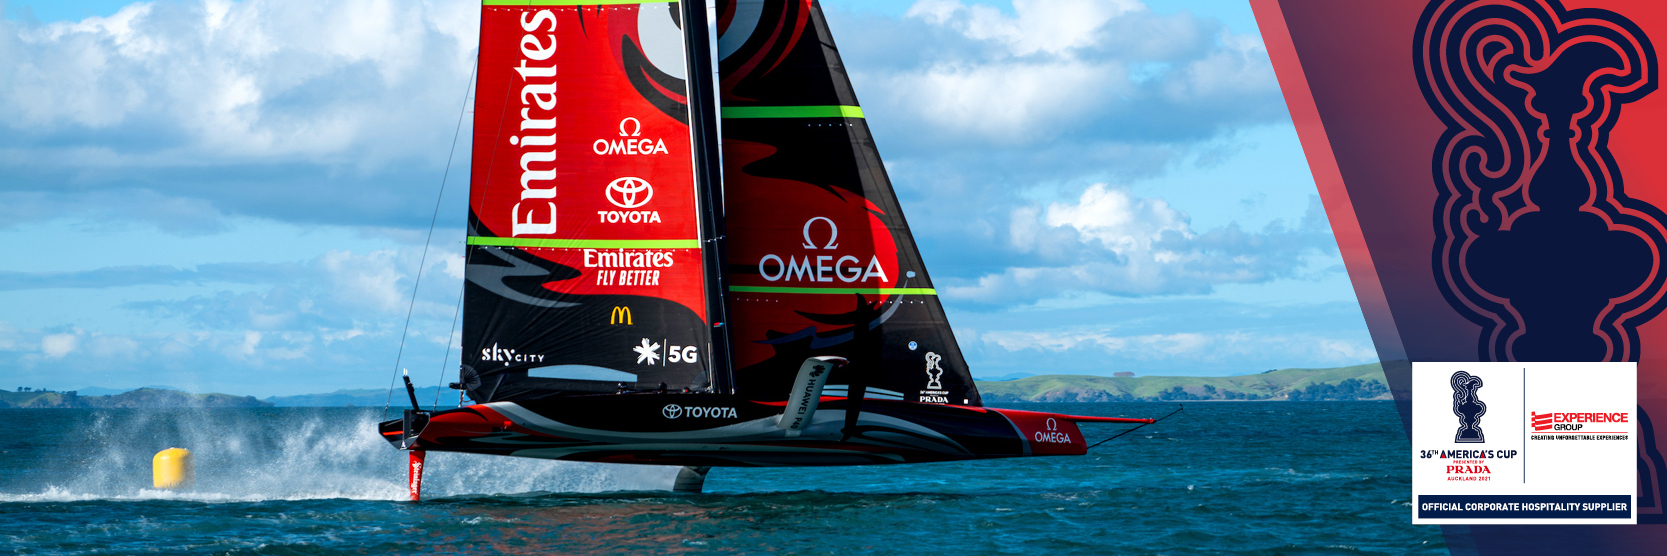 Experience Group - 36th Americas Cup